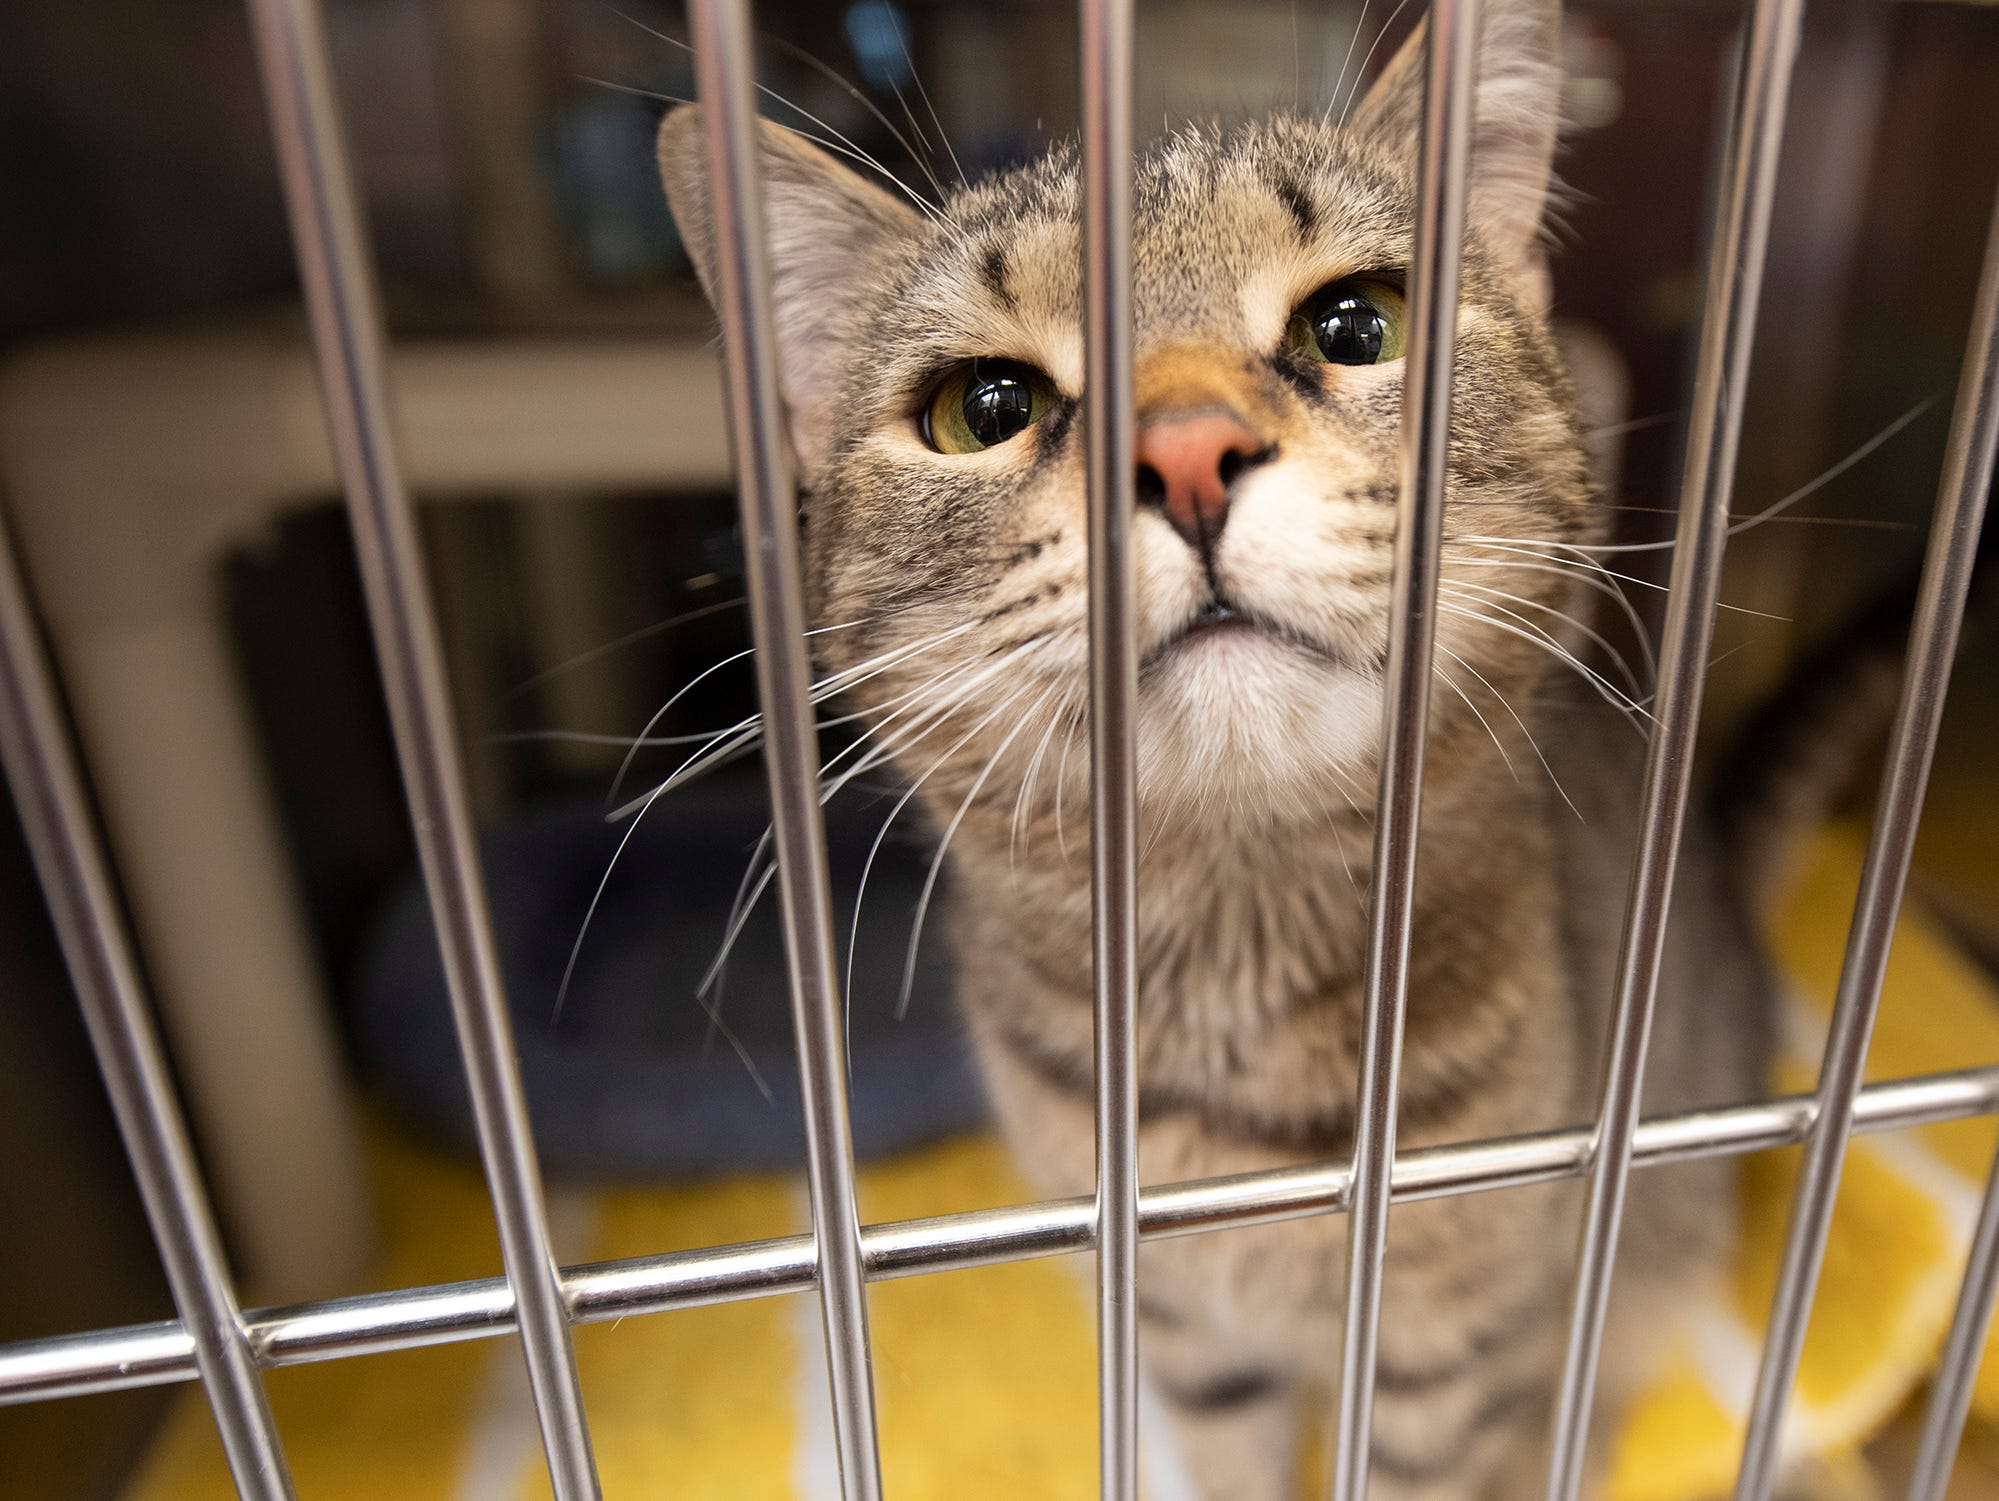 My name is Nelson, a 3 year-old brown Tabby. I was found on Fahs Street in York Township. I am a curious cat.